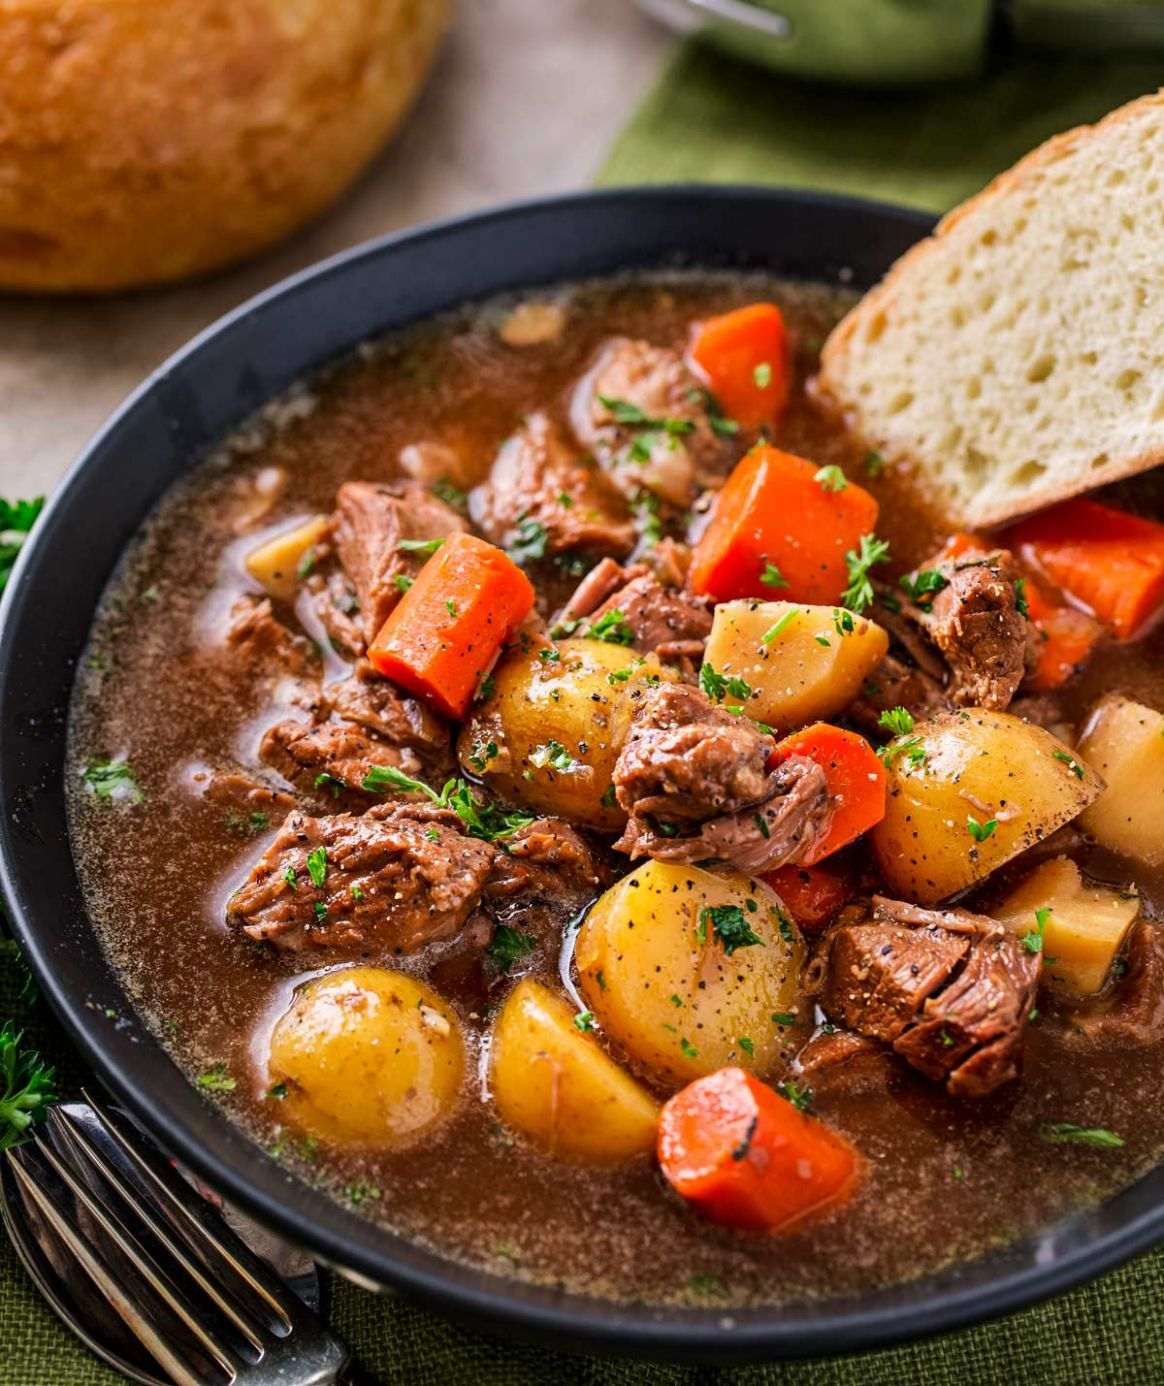 Crockpot Beef Stew - Summer Recipes With Stew Meat